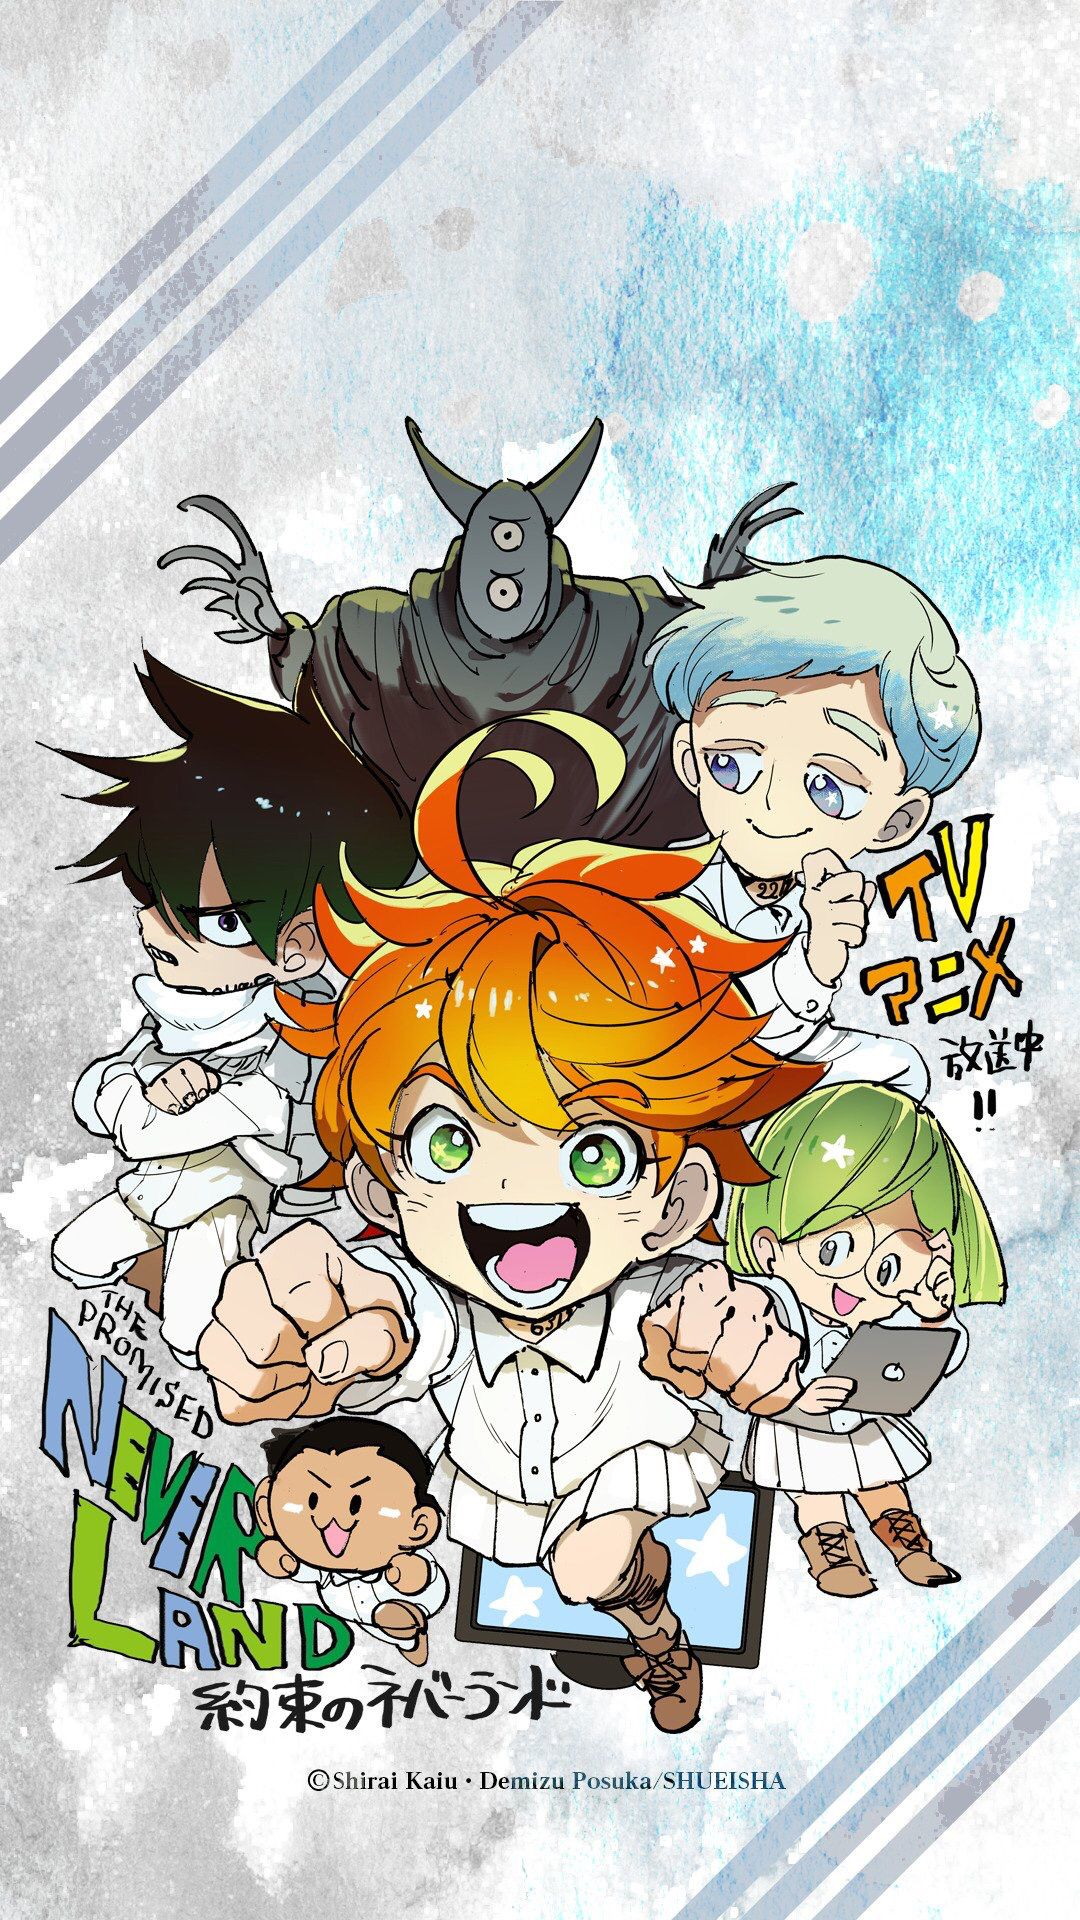 Pin by レイ 孝介 on The Promised Neverland Neverland art